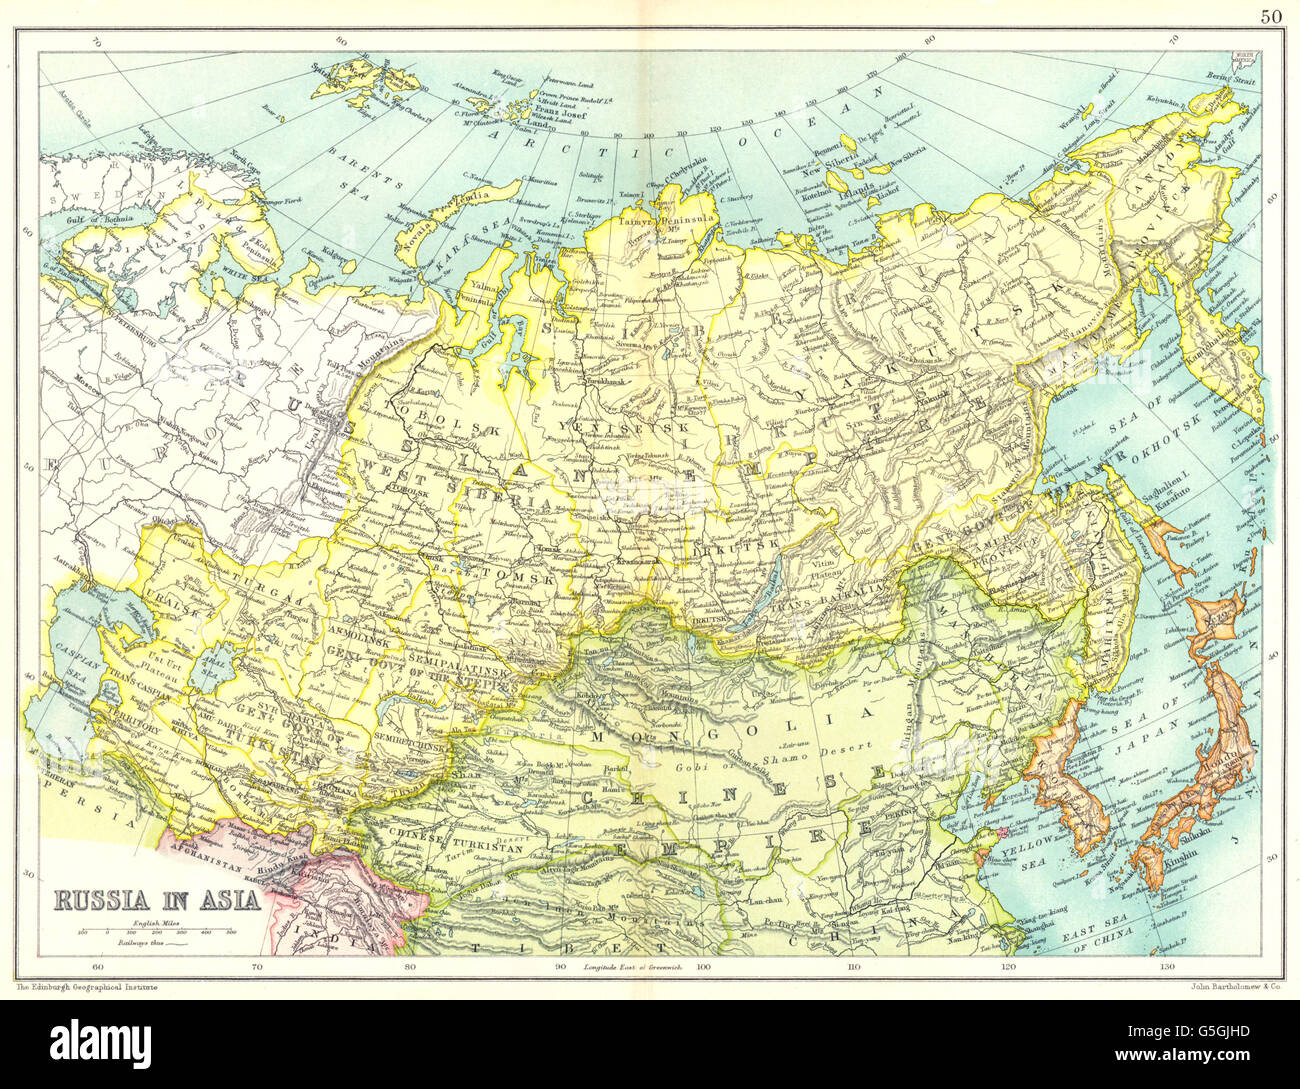 RUSSIA IN ASIA: Siberia. China. Korea Japan. Irkutsk Yakutsk Steppes on tula russia on map, chechnya russia on map, simferopol russia on map, don river russia on map, volgograd russia on map, st. petersburg russia on map, rostov russia on map, novosibirsk russia on map, khakassia russia on map, bratsk russia on map, verkhoyansk russia on map, syktyvkar russia on map, oymyakon russia on map, vladivostok russia on map, belgorod russia on map, tallinn russia on map, kaliningrad russia on map, moscow russia on map, volga river russia on map, irkutsk russia on map,